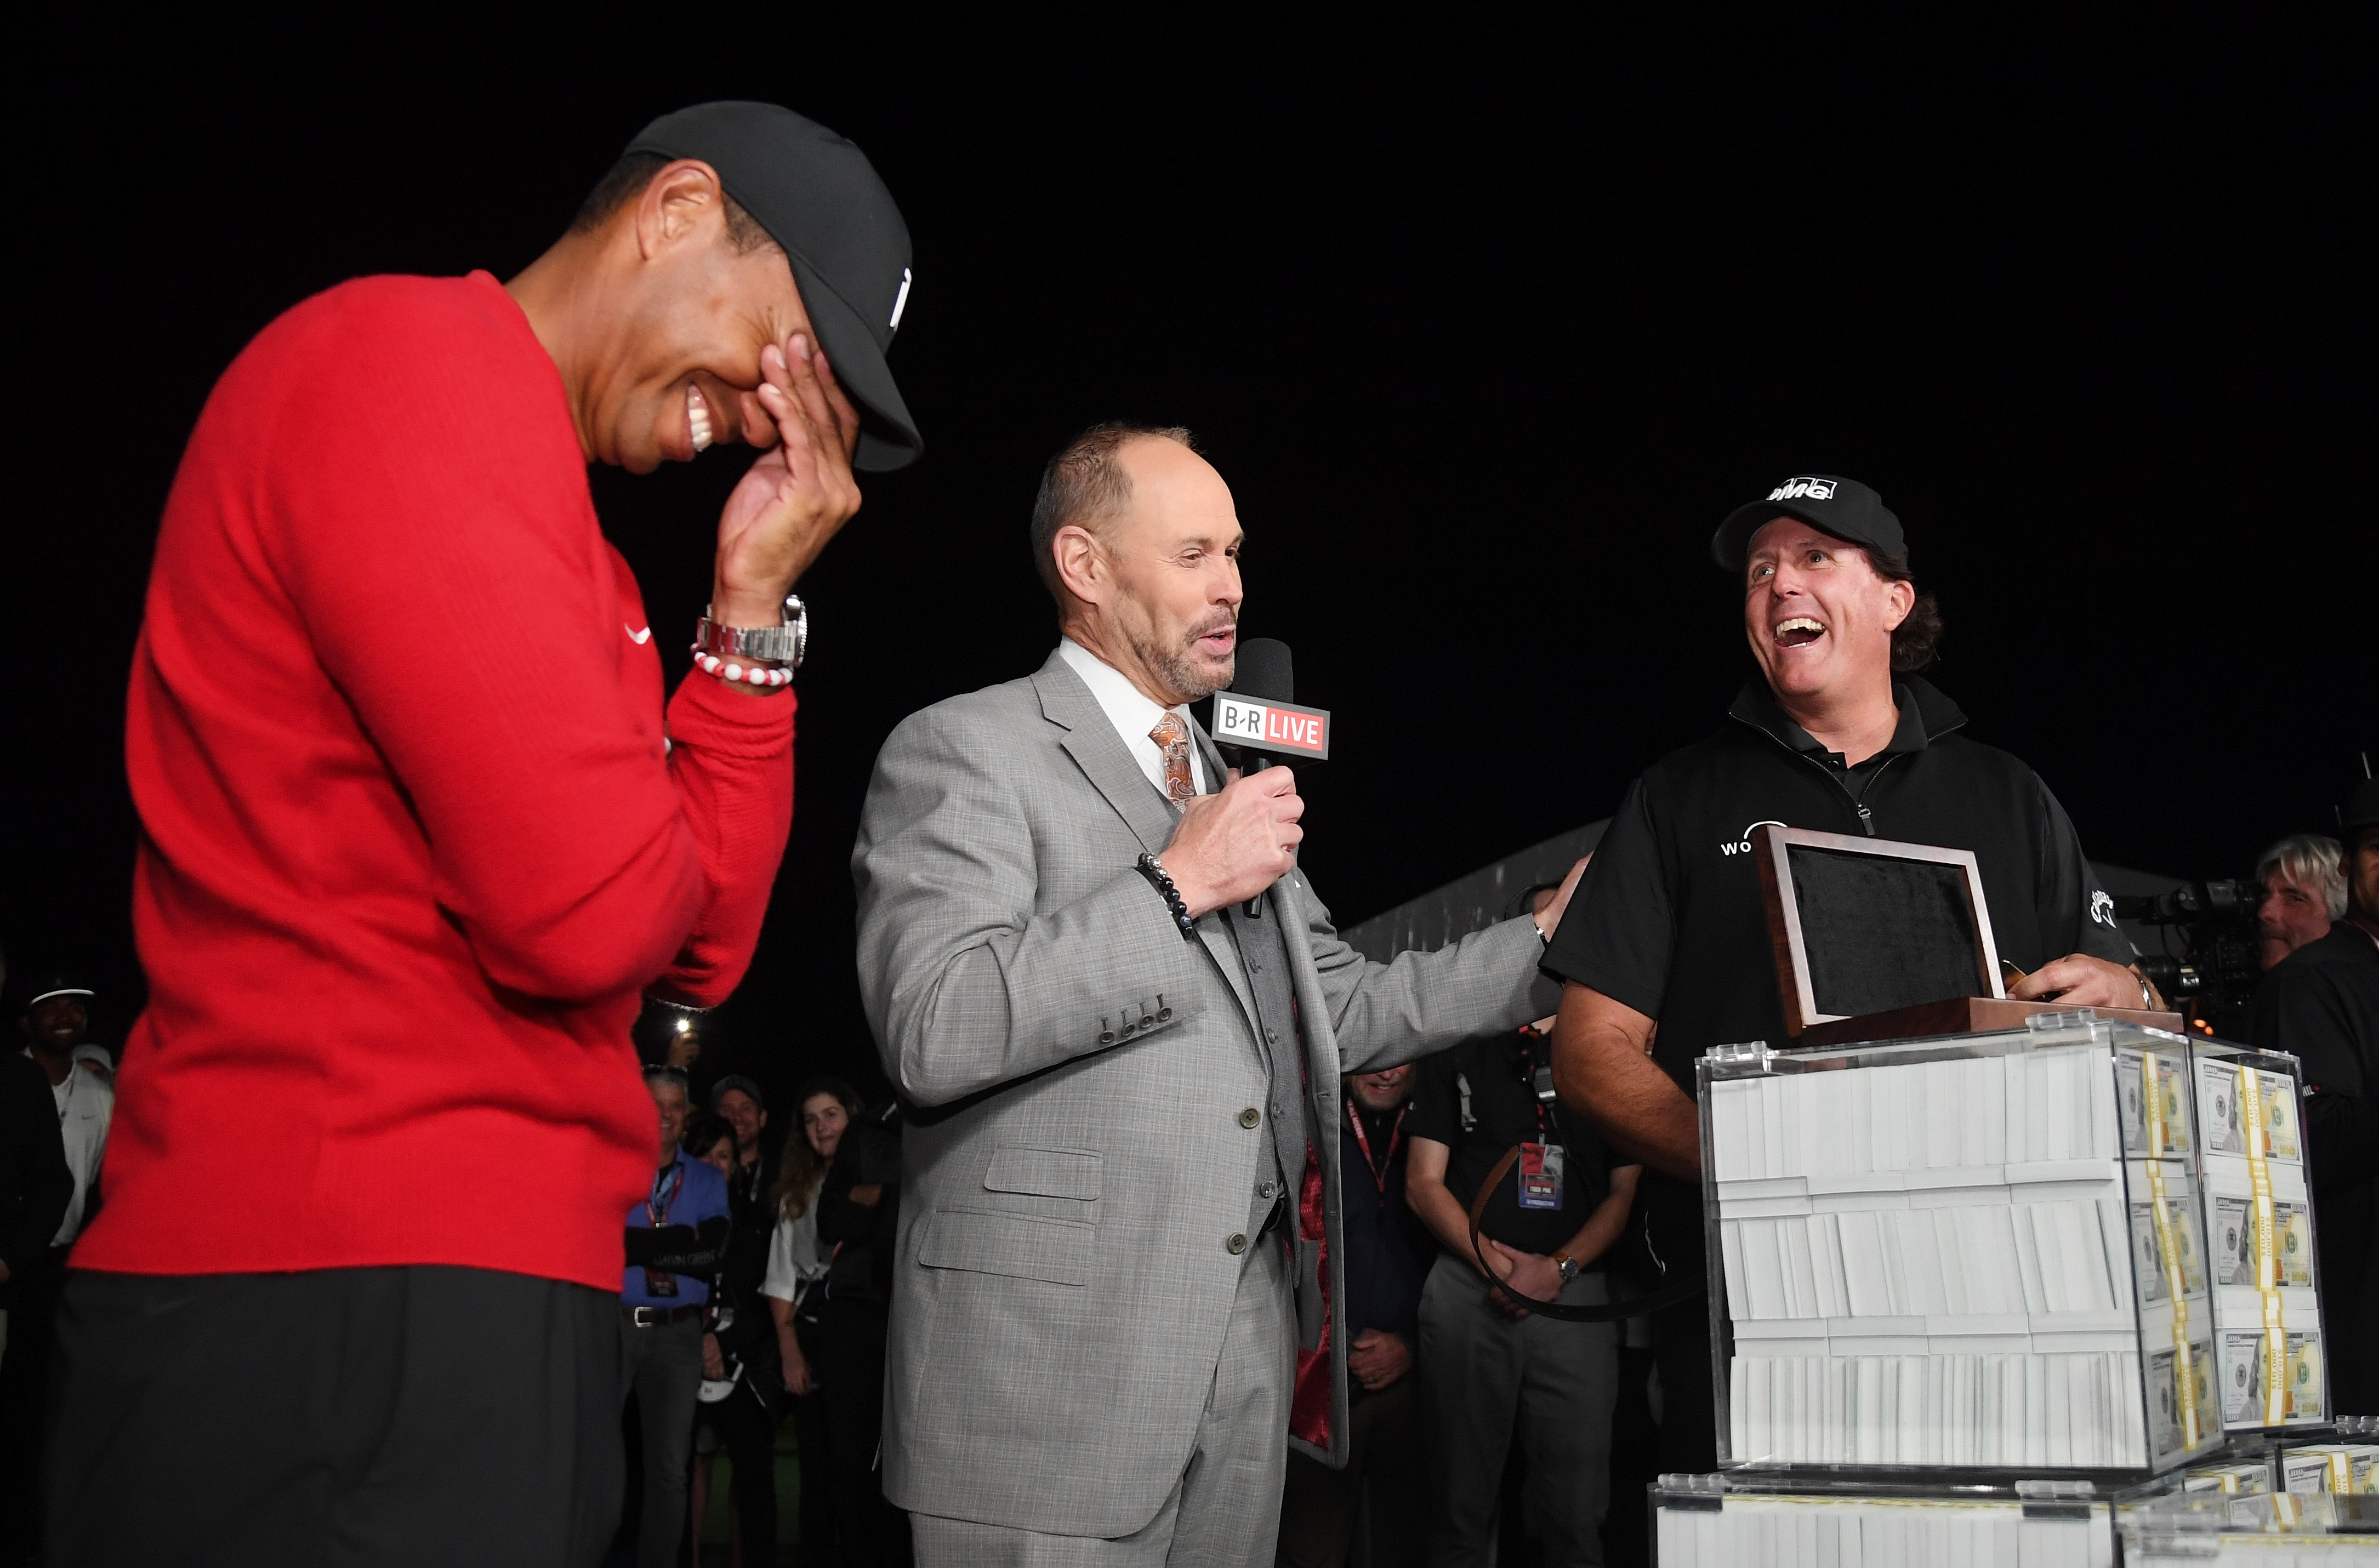 Tiger Woods and Phil Mickelson after The Match in 2018